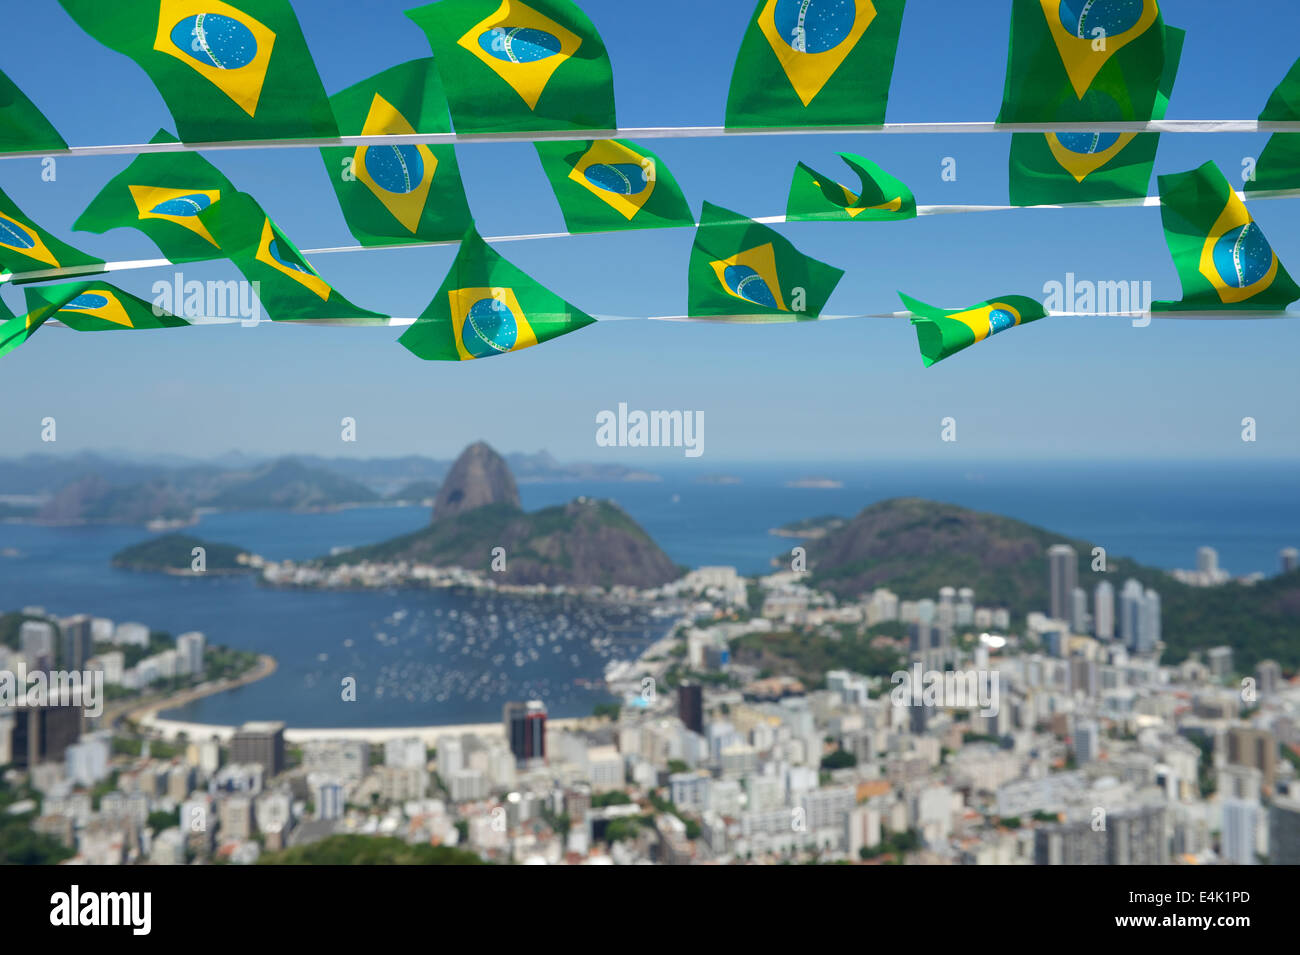 Brazilian Flags Bunting Decoration Above Sugarloaf Pao De Acucar Mountain Rio Janeiro Scenic Skyline View